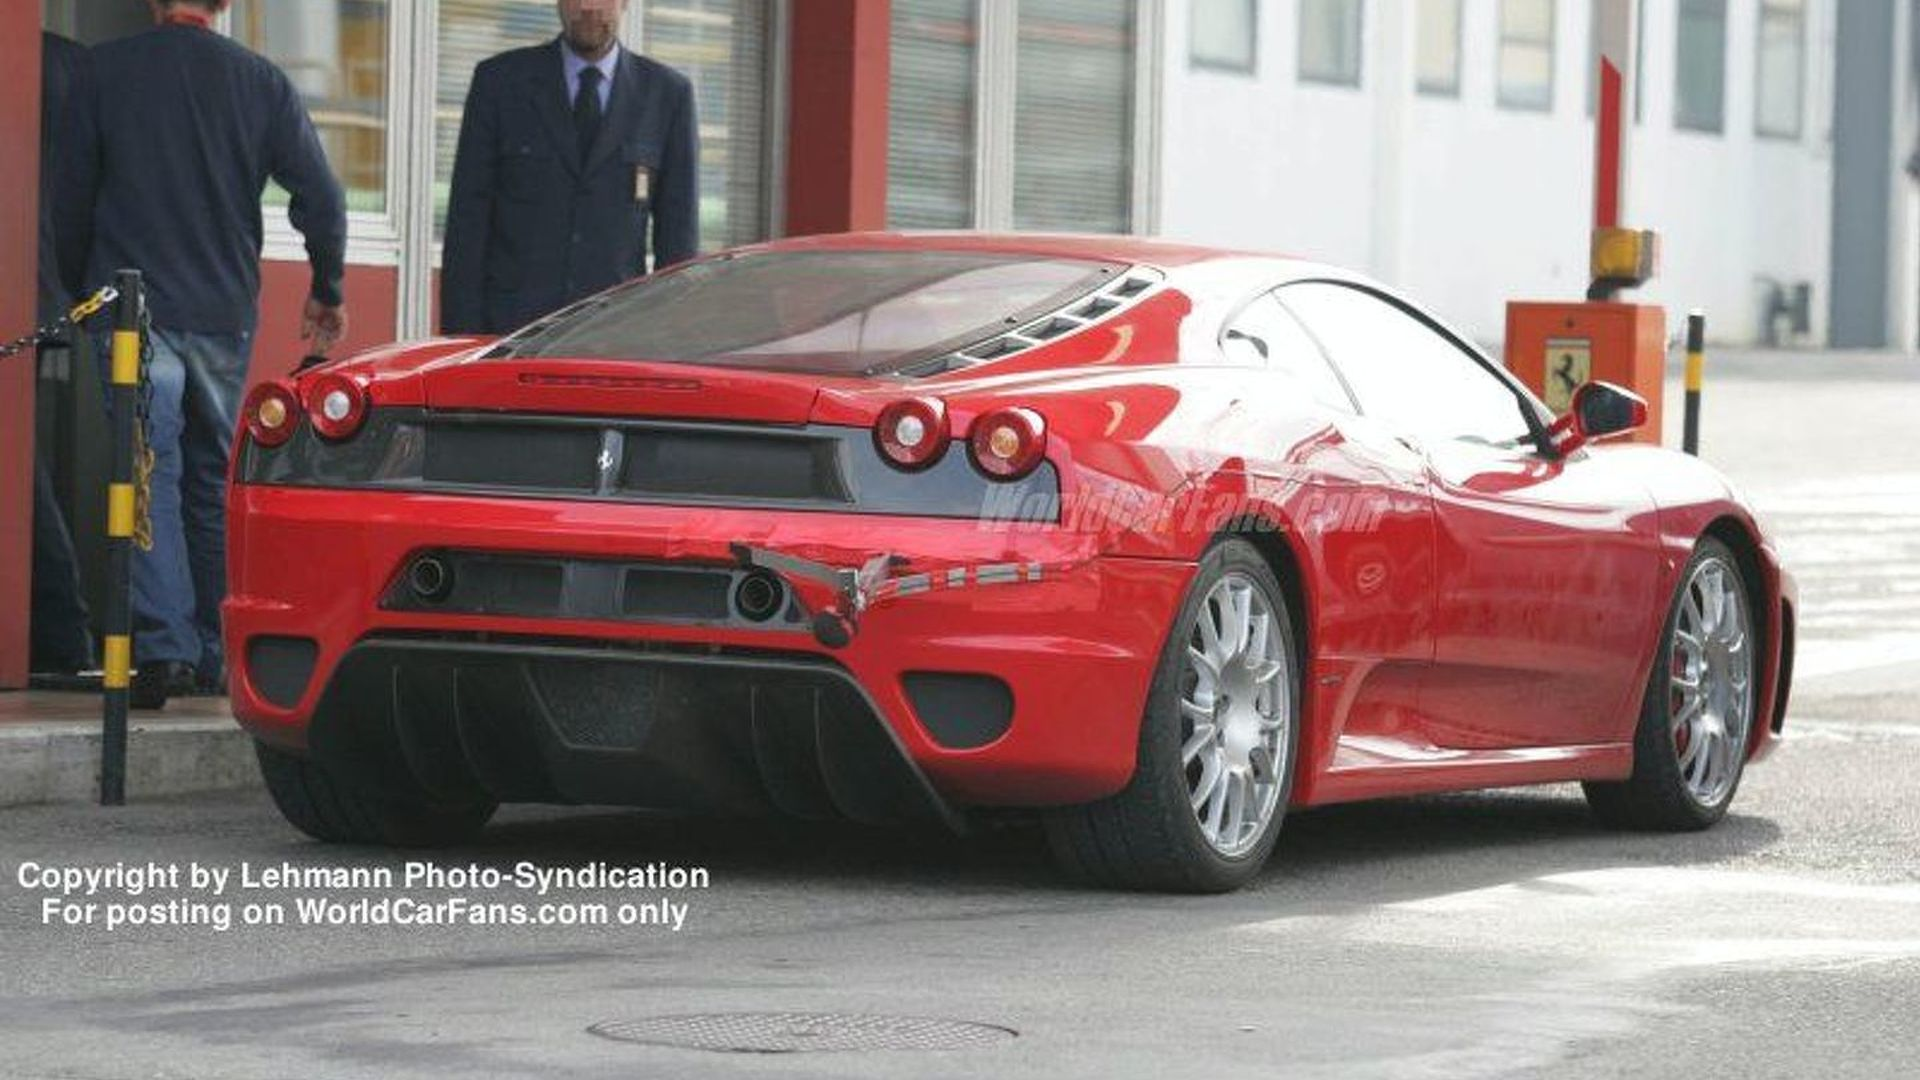 SPY PHOTOS: More Ferrari F430 Challenge Stradale